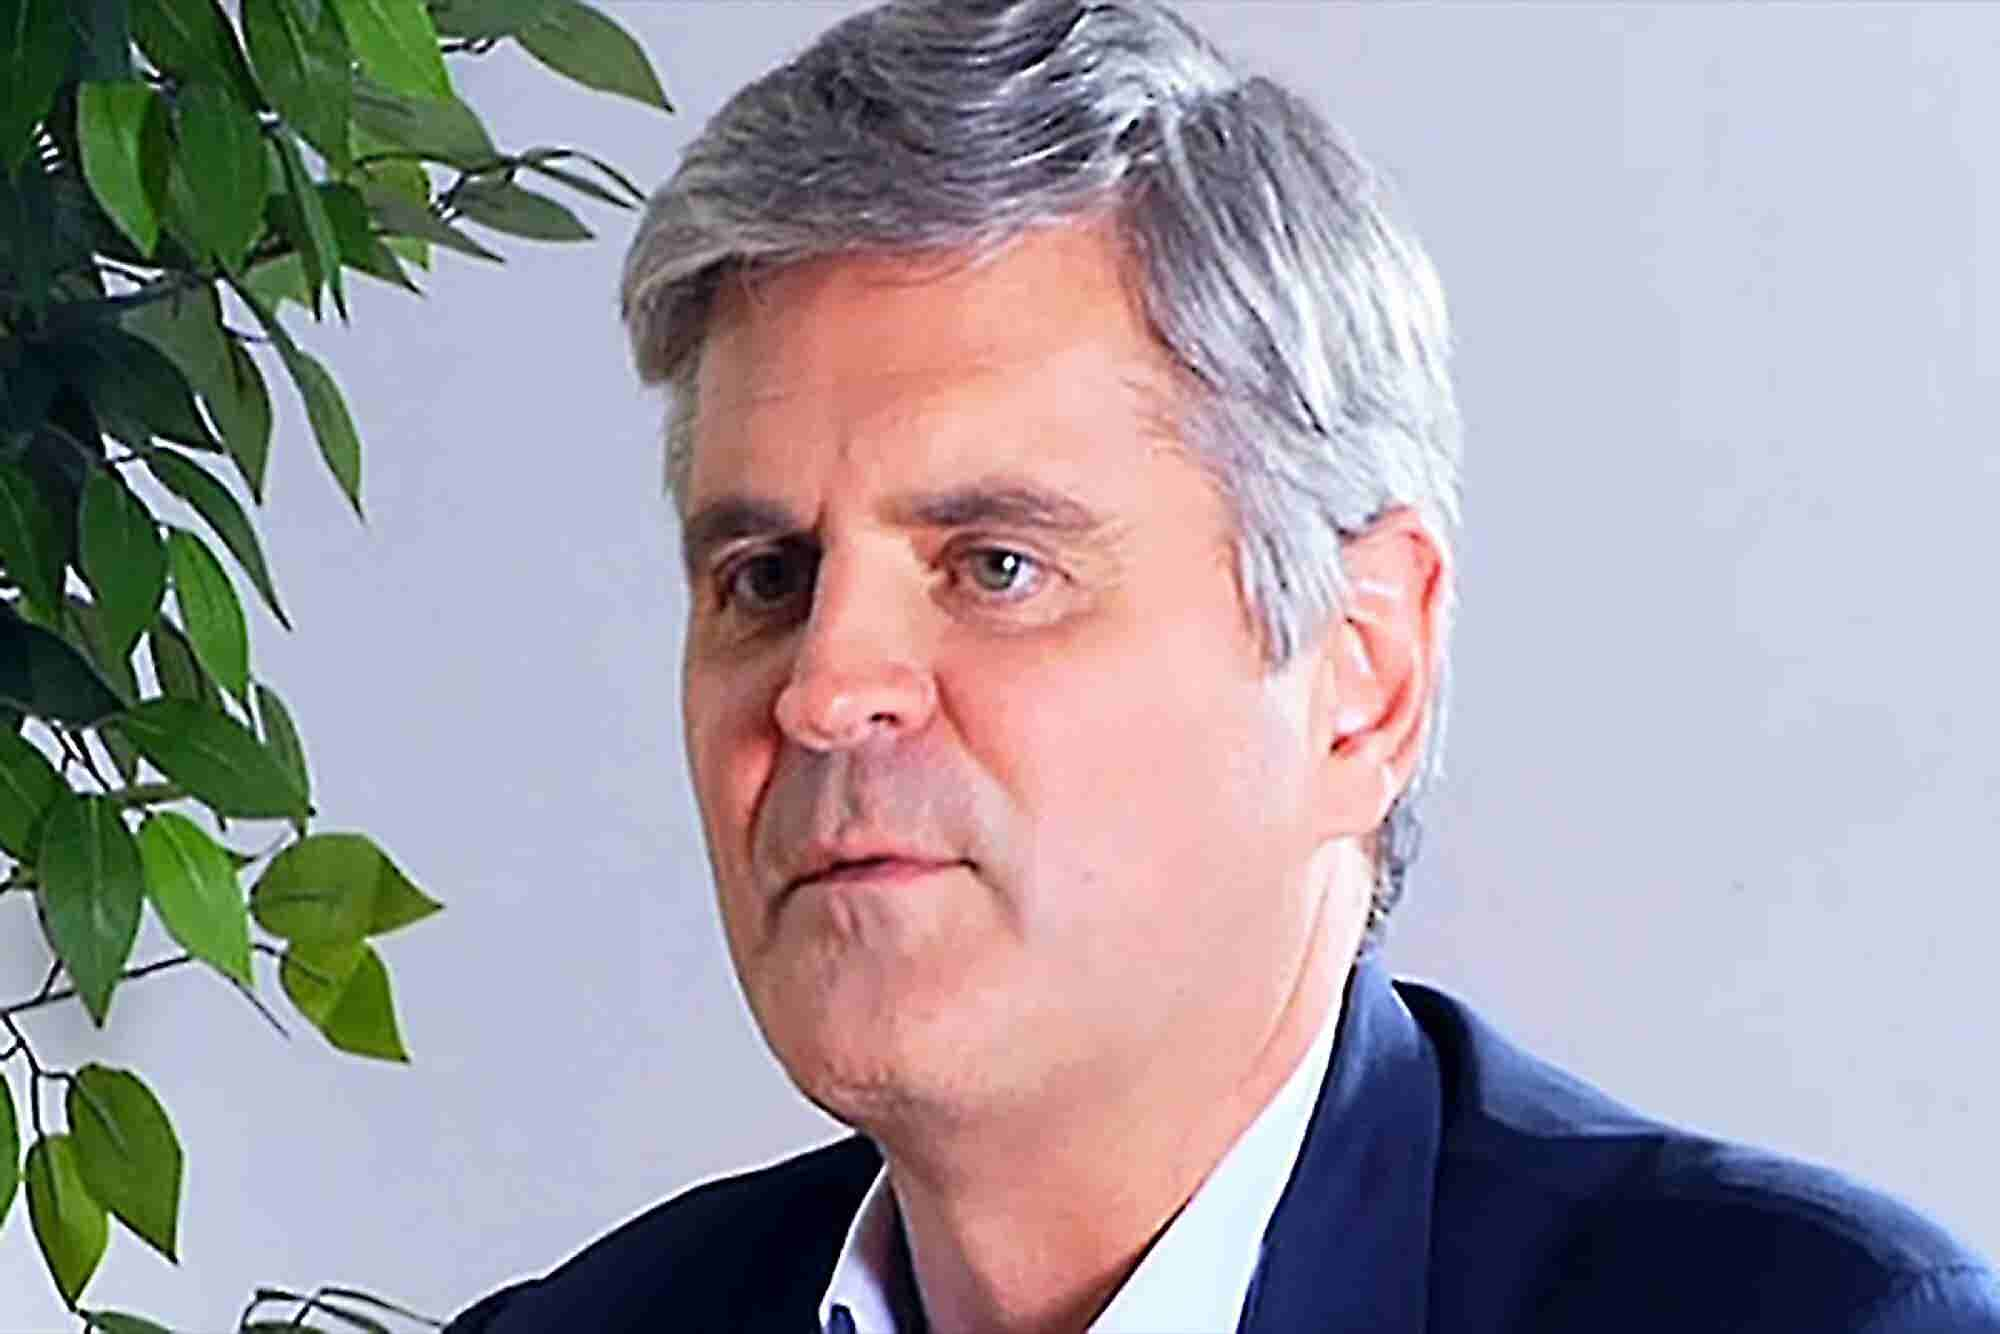 Steve Case on What Makes a Successful Entrepreneur